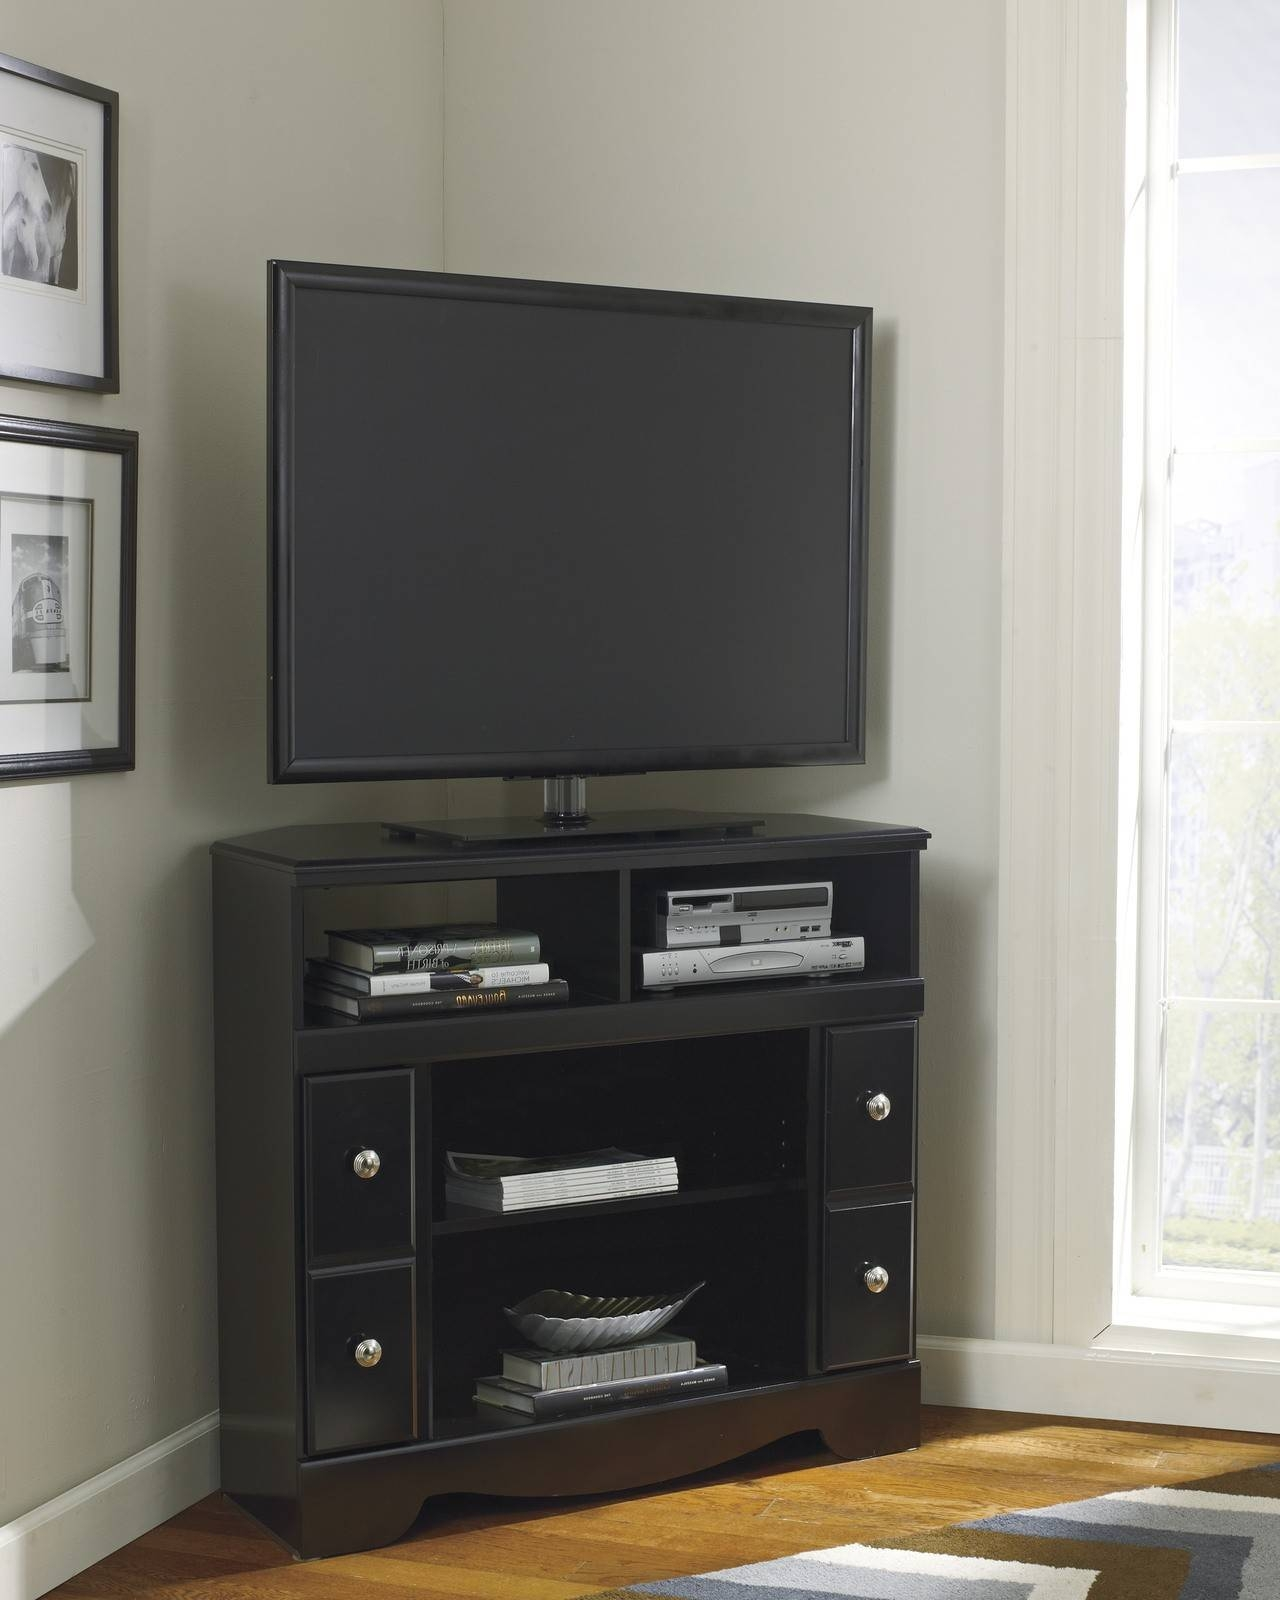 Cornet Tv Stand Cabinet In Black Color With Fireplace Insert Pertaining To Cornet Tv Stands (View 3 of 15)